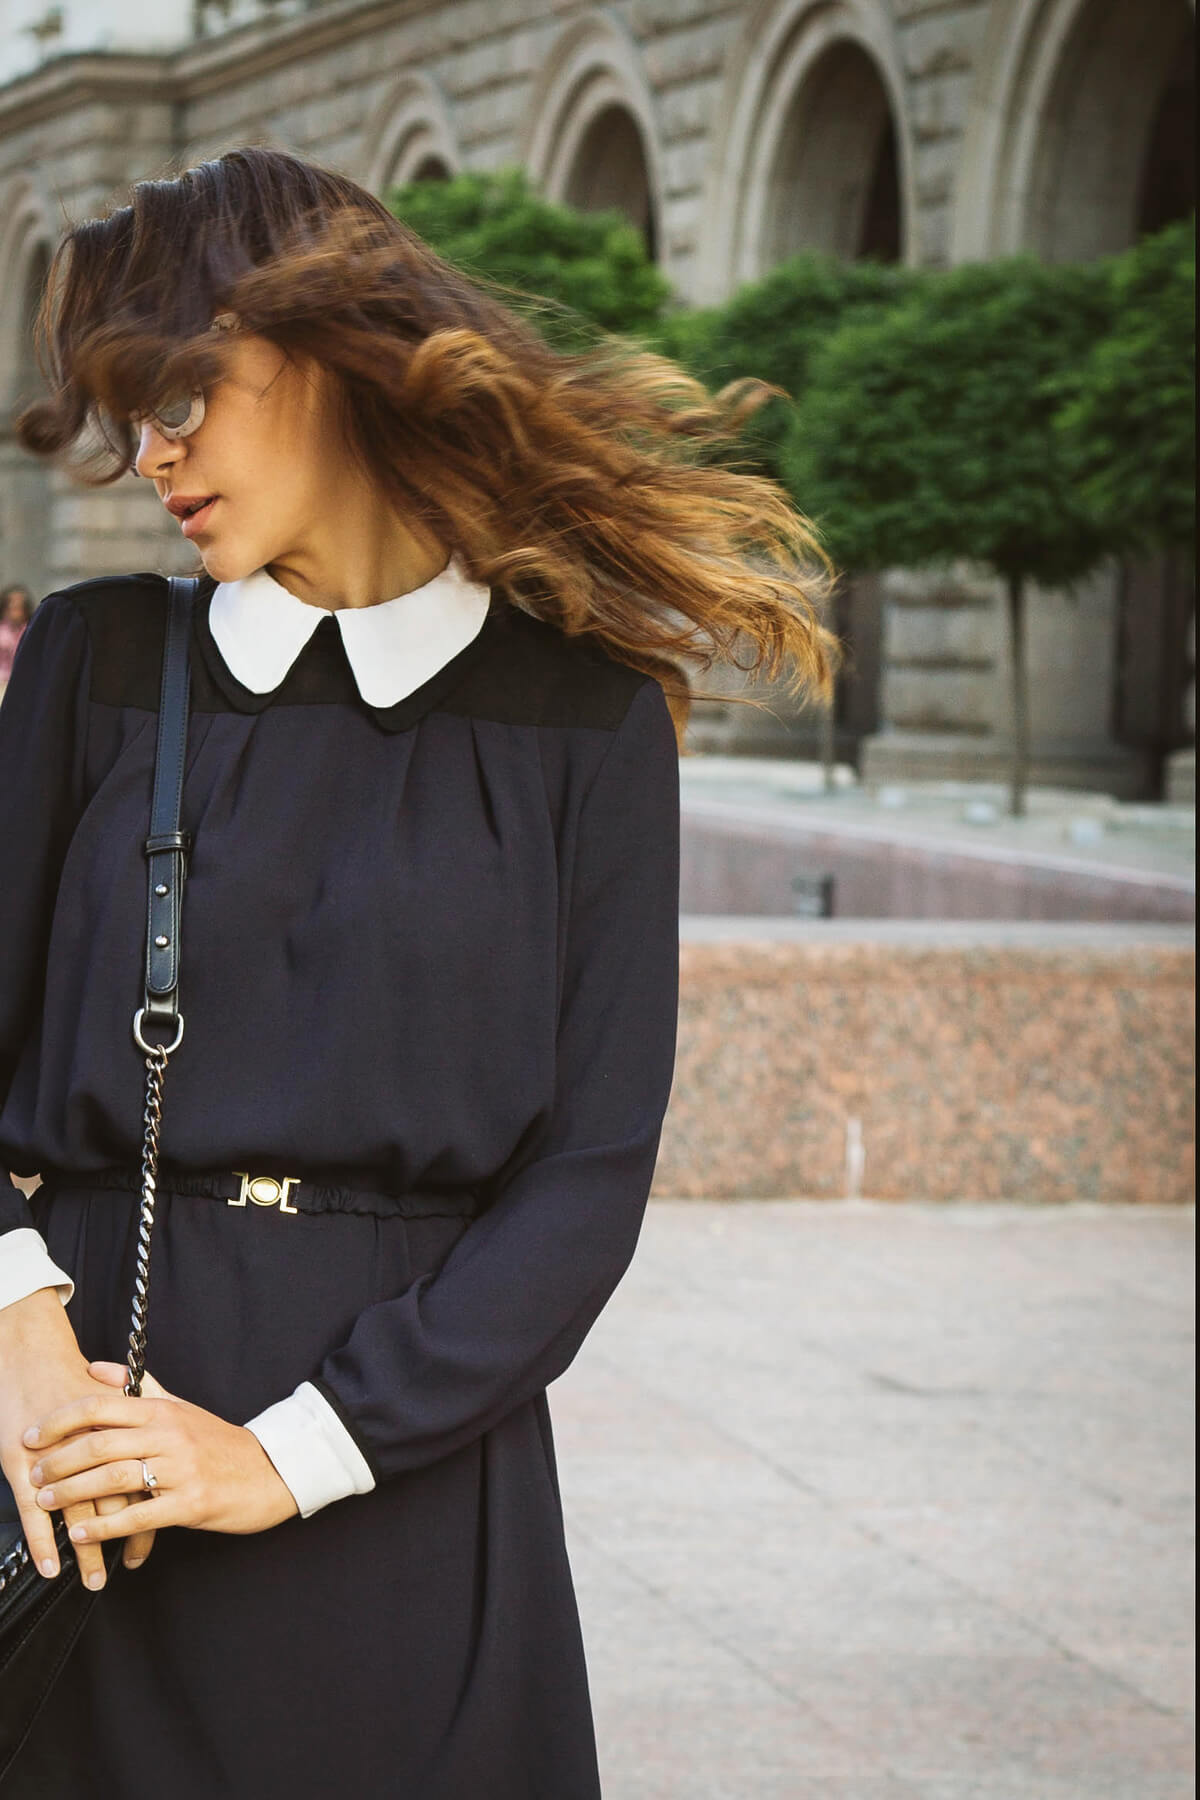 Dress with white collar